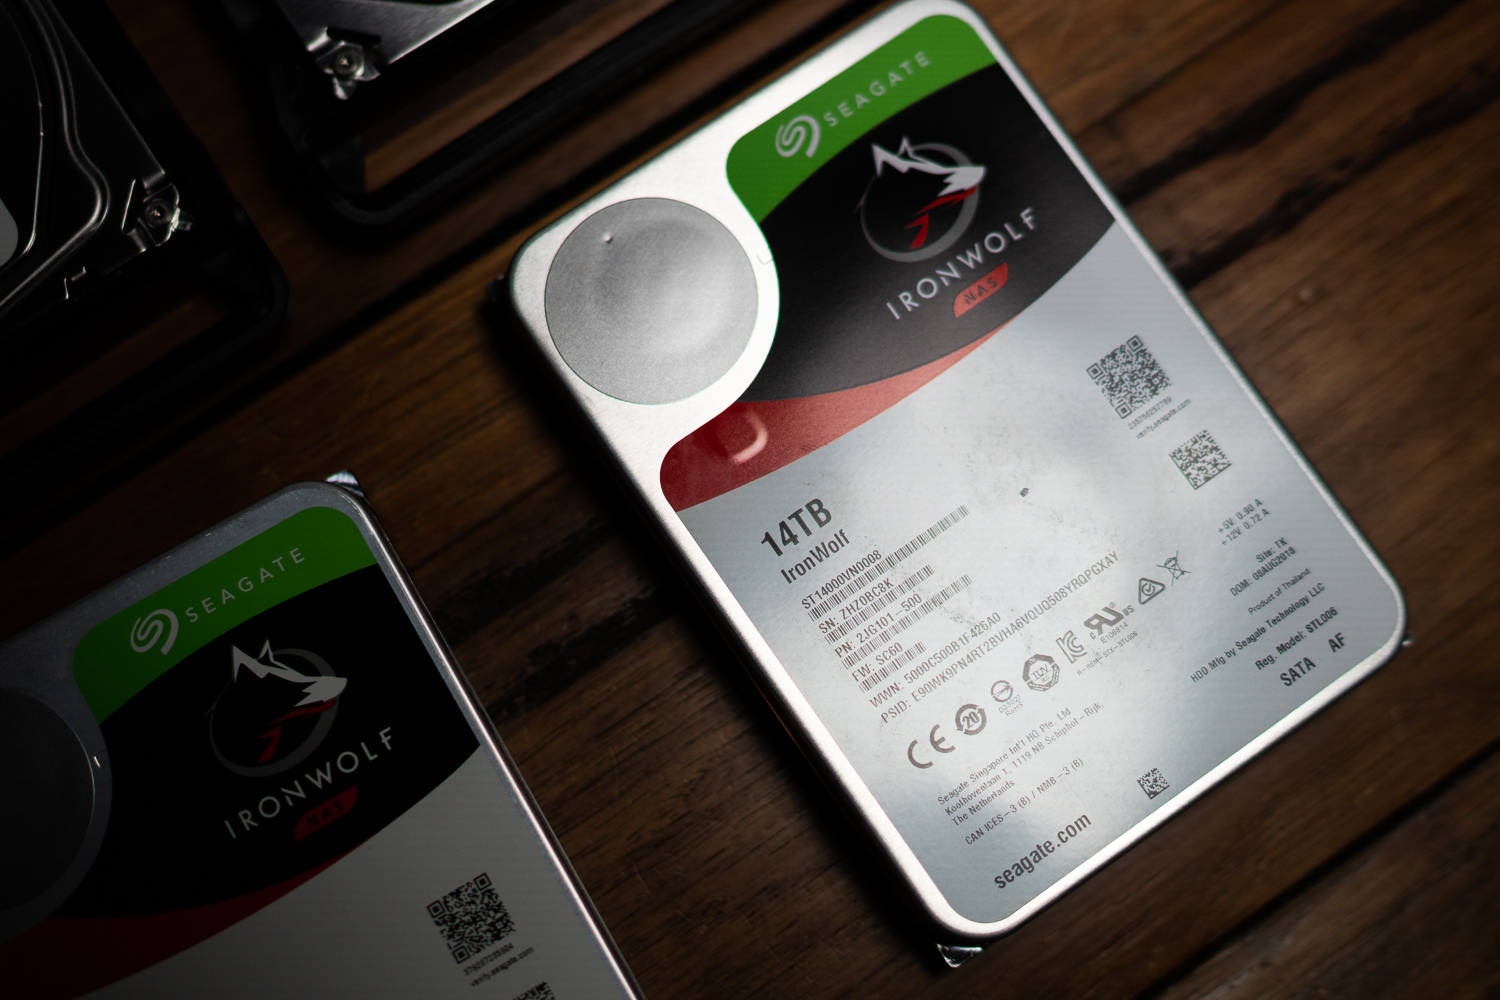 Review: Seagate 14tb Ironwolf Disks for all of Your Photographs